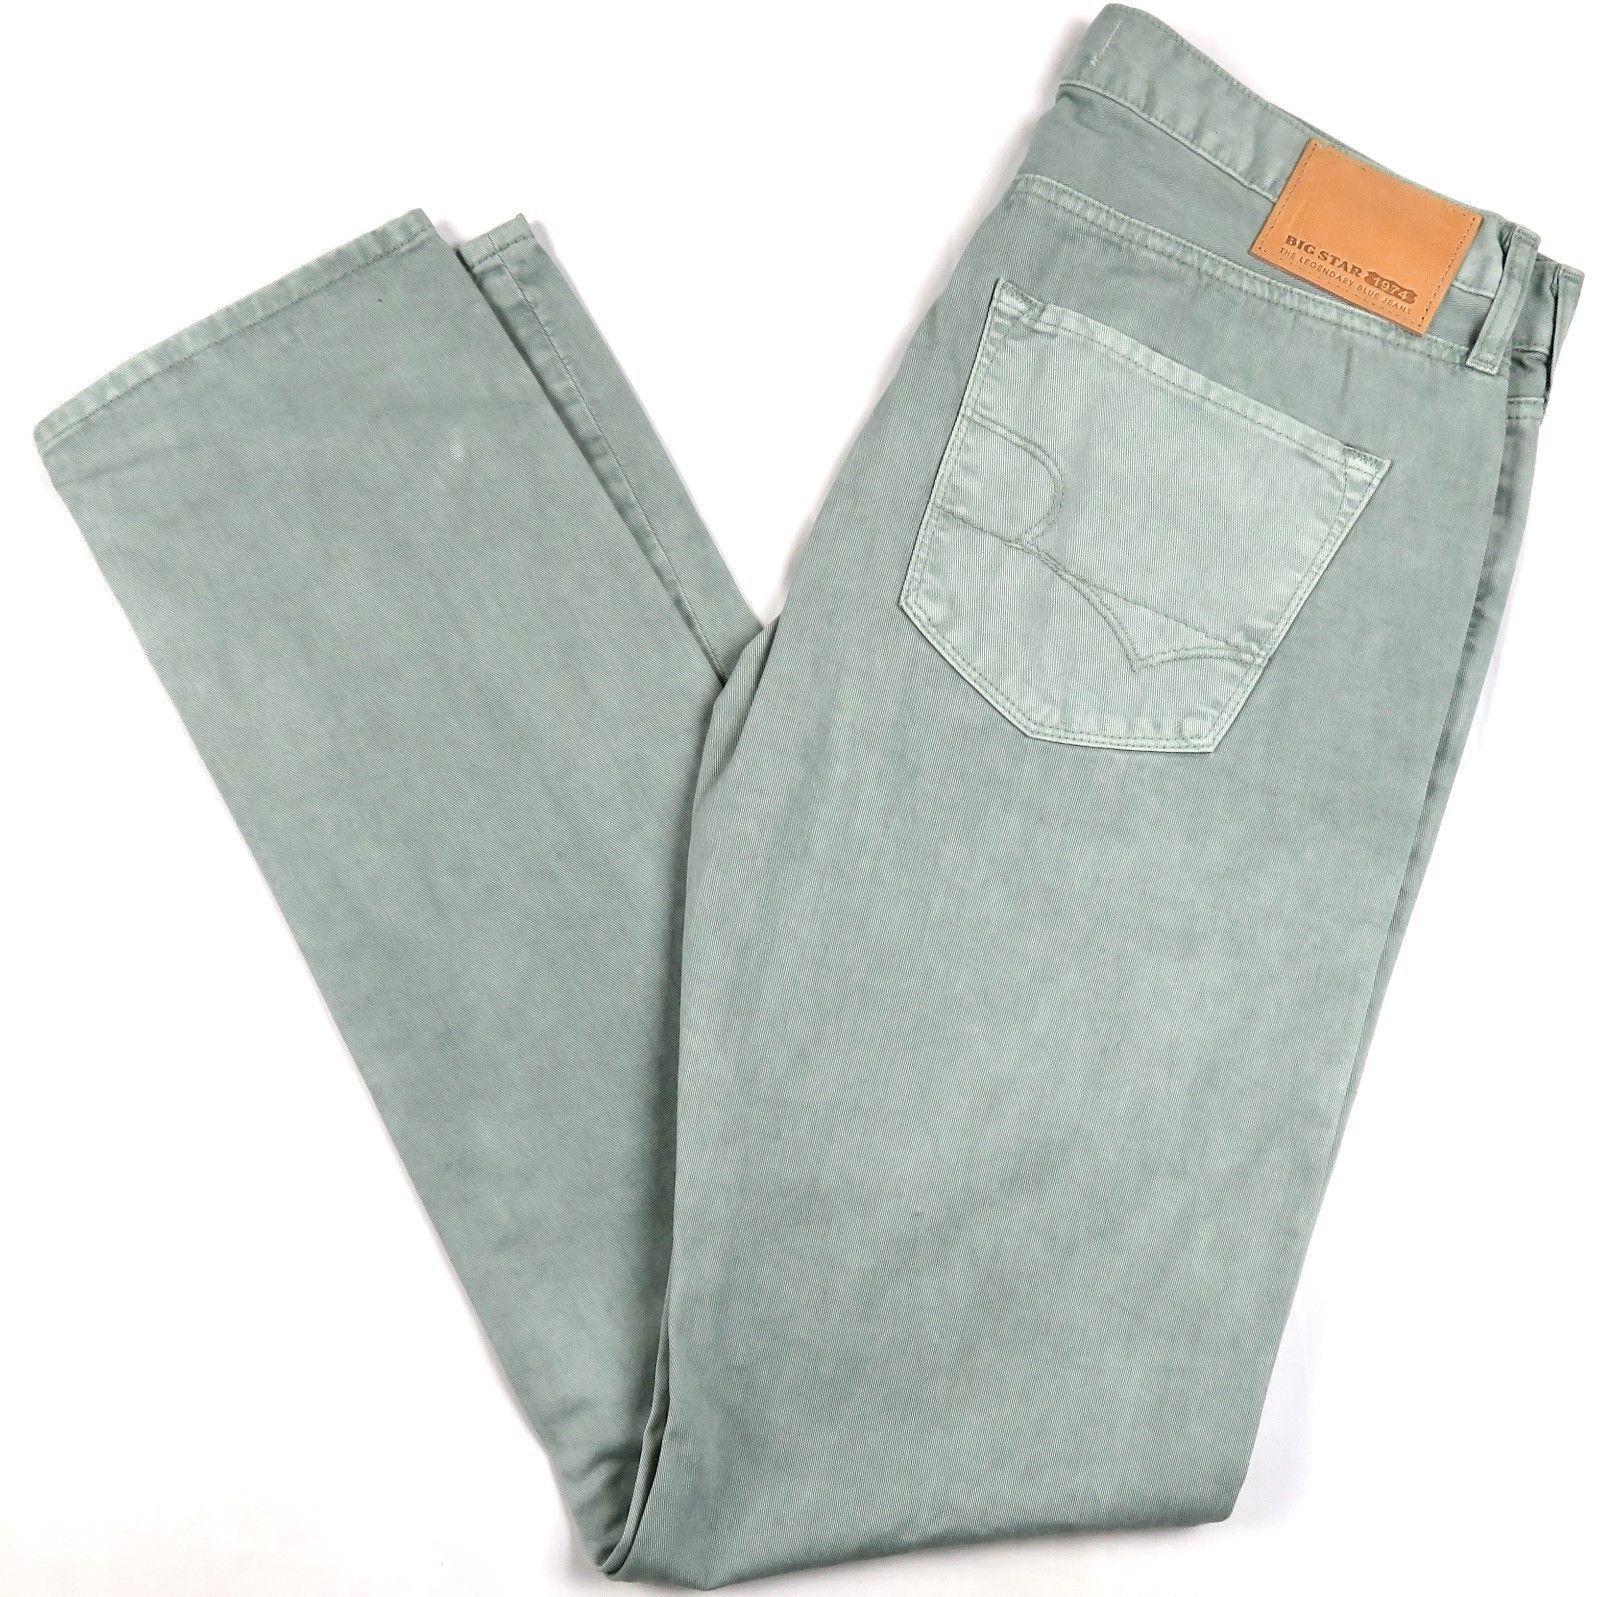 Big Star 1974 Men's Jeans Archetype Slim Fit Denim Pants Sea Foam